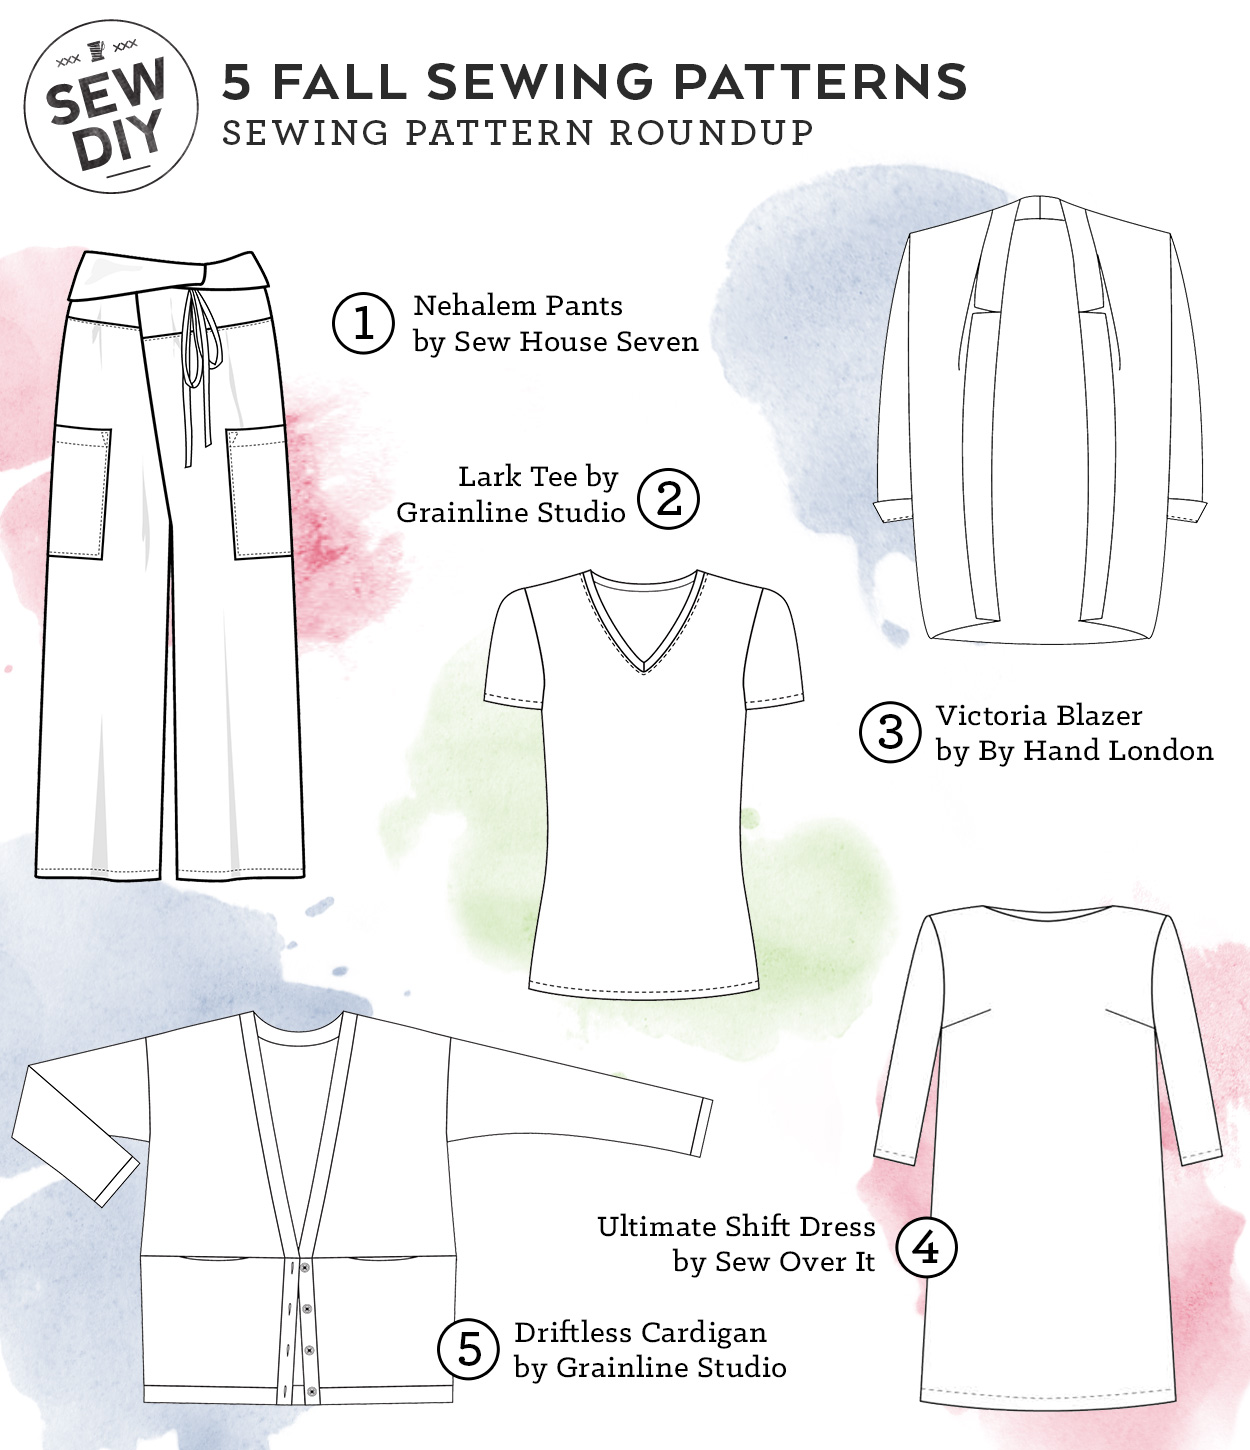 Sew yourself a classic fall wardrobe with these 5 Sewing Patterns   Sew DIY